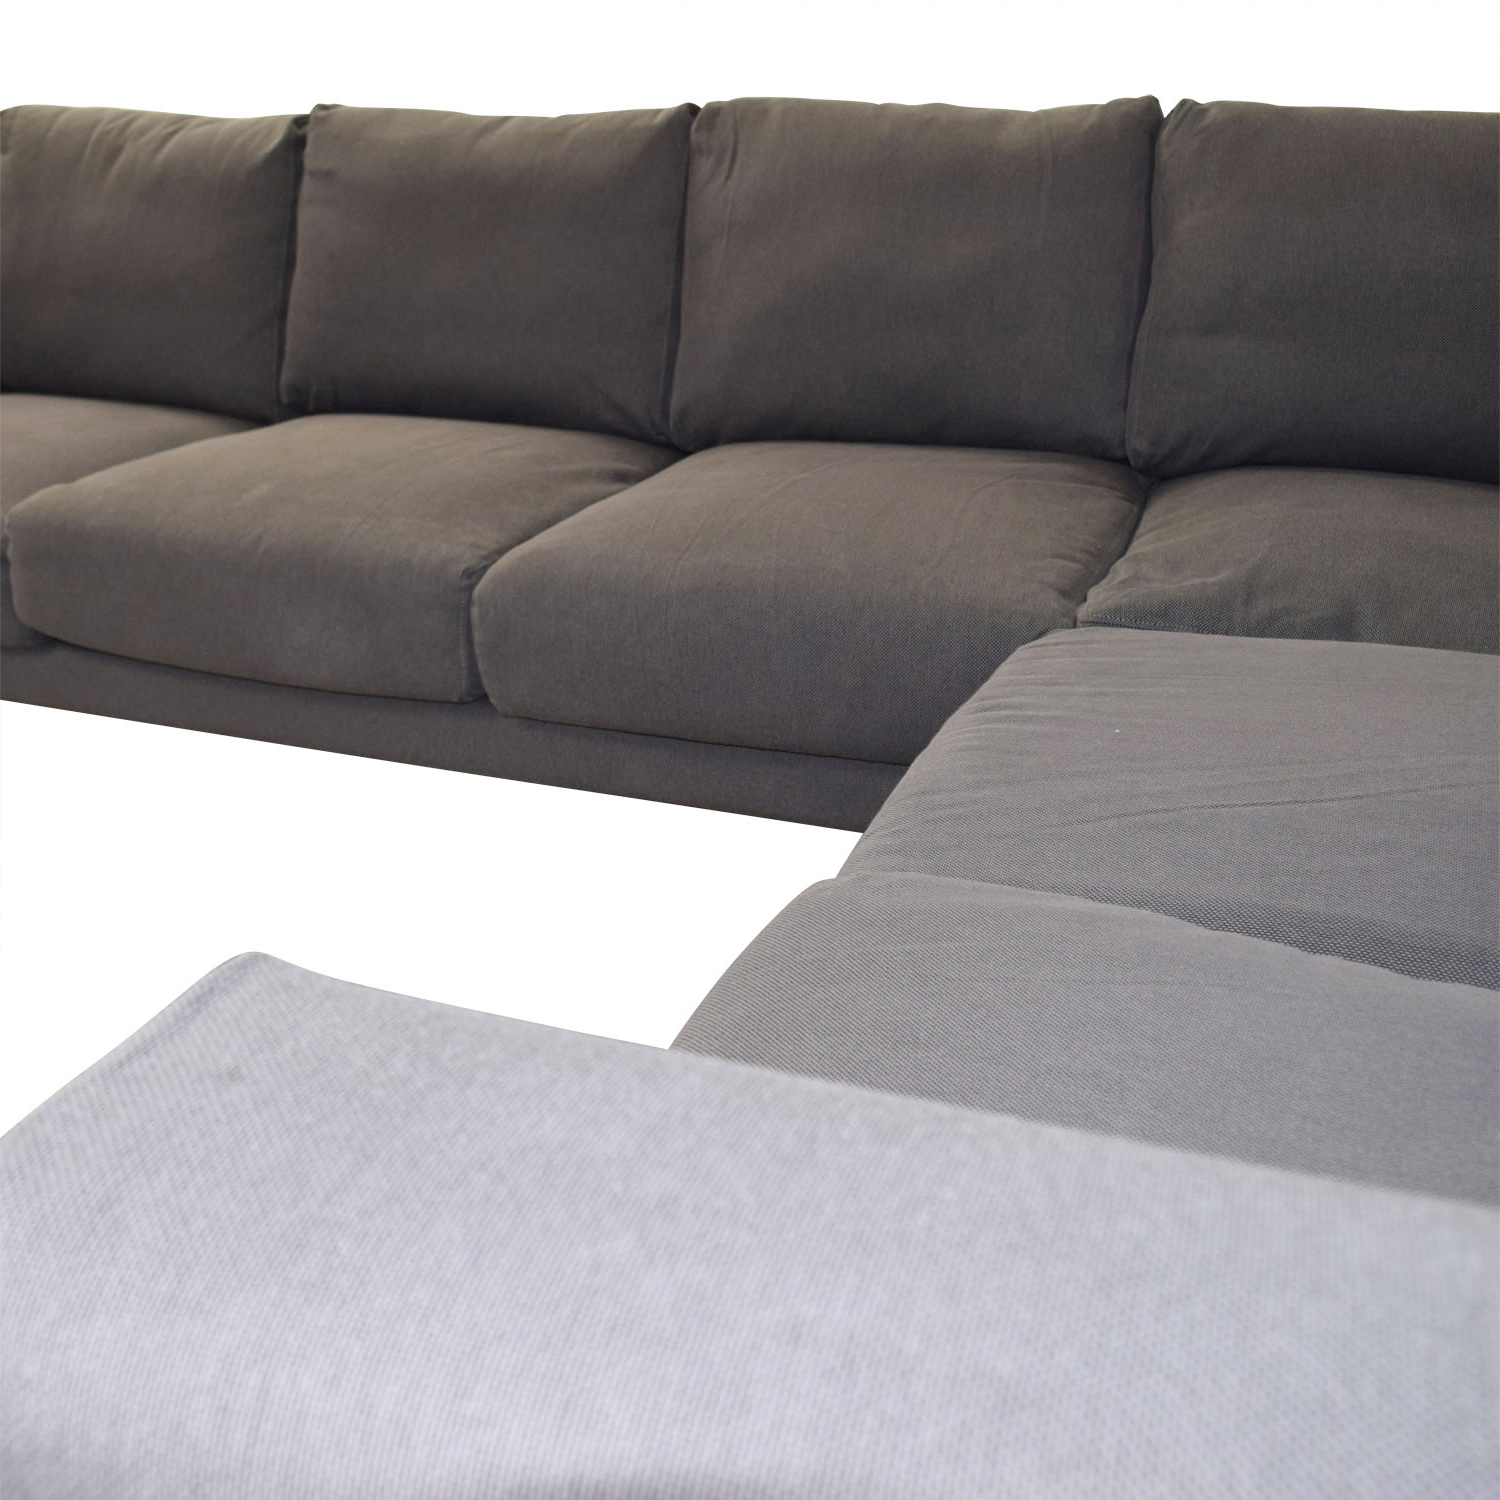 [%53% Off – Ikea Ikea Norsborg Grey L Shaped Sectional / Sofas Throughout Recent Owego L Shaped Sectional Sofas|owego L Shaped Sectional Sofas With Regard To Most Popular 53% Off – Ikea Ikea Norsborg Grey L Shaped Sectional / Sofas|current Owego L Shaped Sectional Sofas For 53% Off – Ikea Ikea Norsborg Grey L Shaped Sectional / Sofas|well Liked 53% Off – Ikea Ikea Norsborg Grey L Shaped Sectional / Sofas In Owego L Shaped Sectional Sofas%] (View 13 of 20)